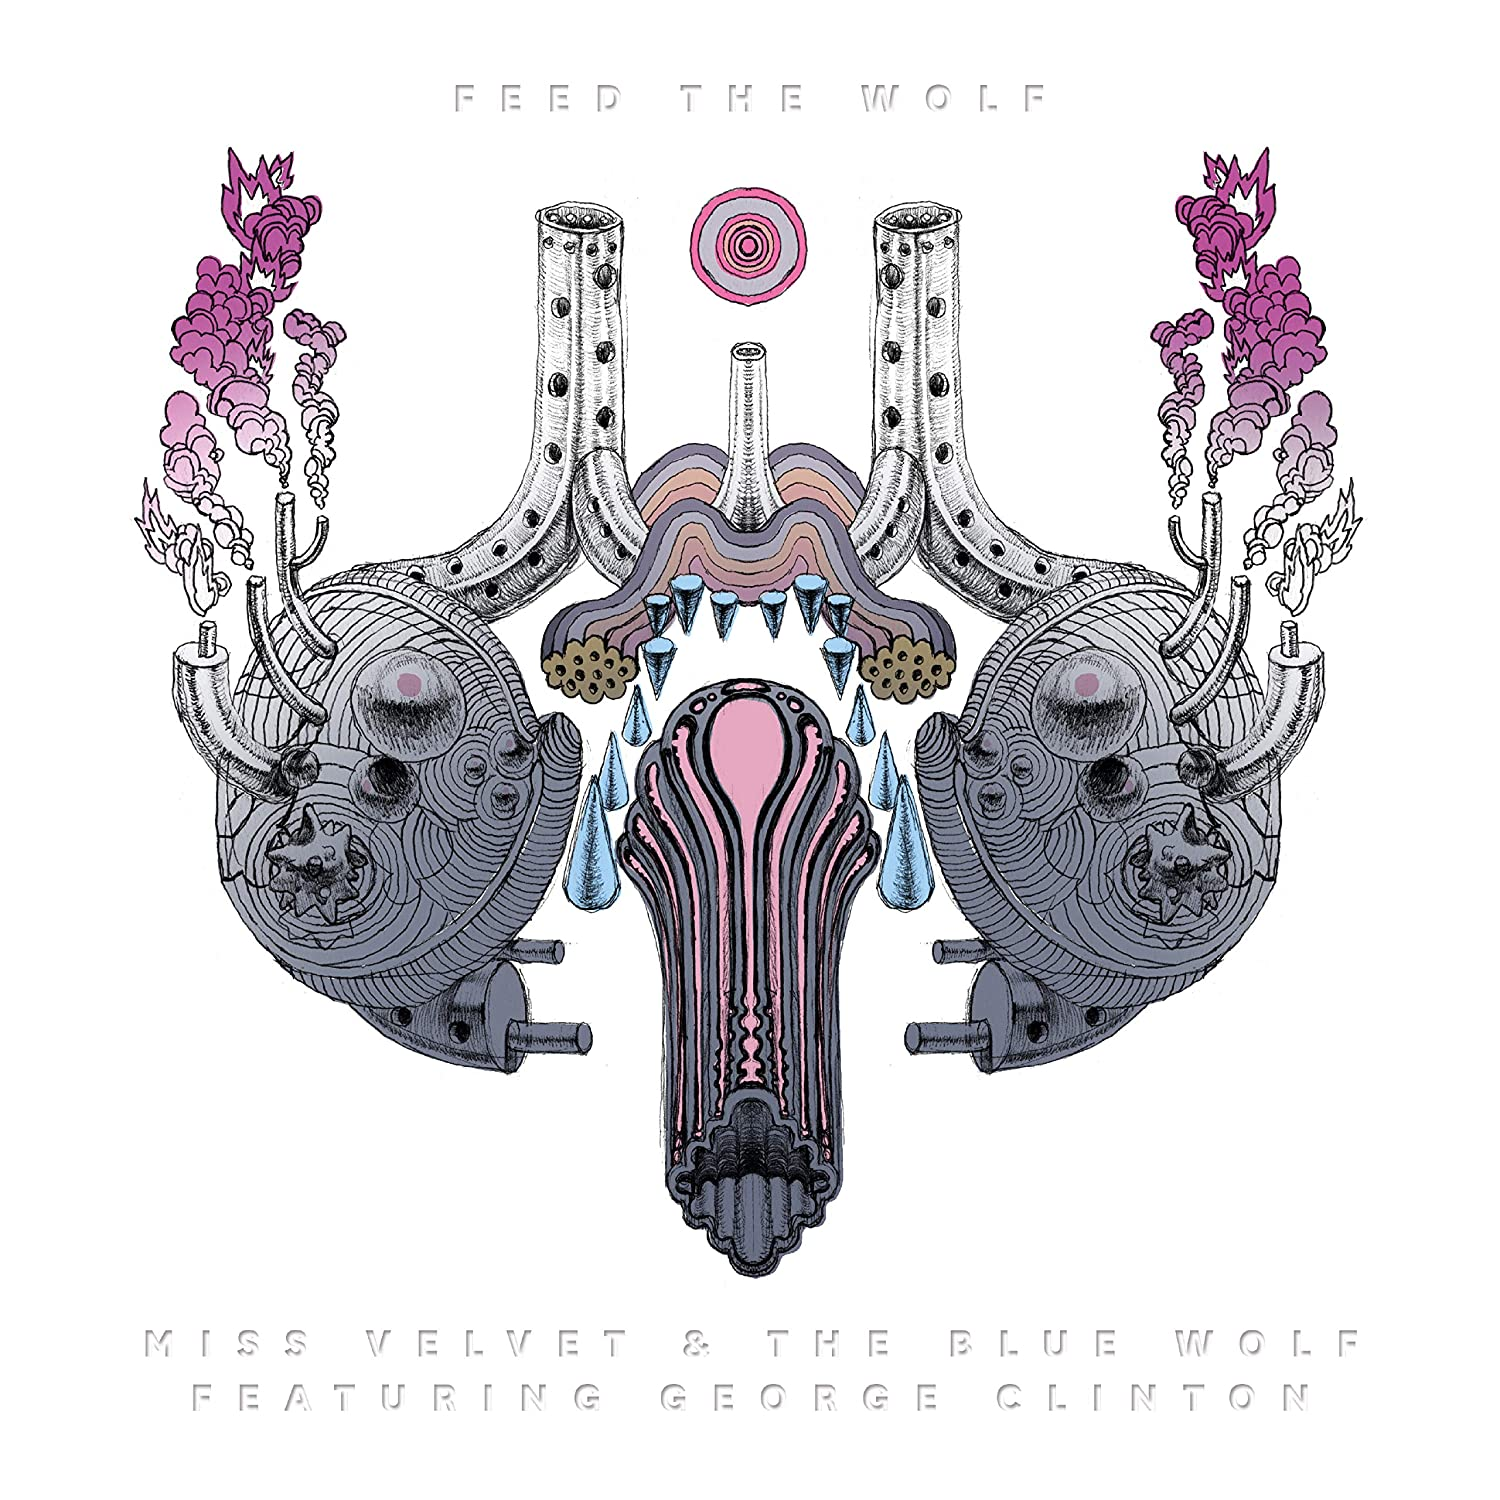 Feed The Wolf (Ft. George Clinton) (LP) [Vinilo]